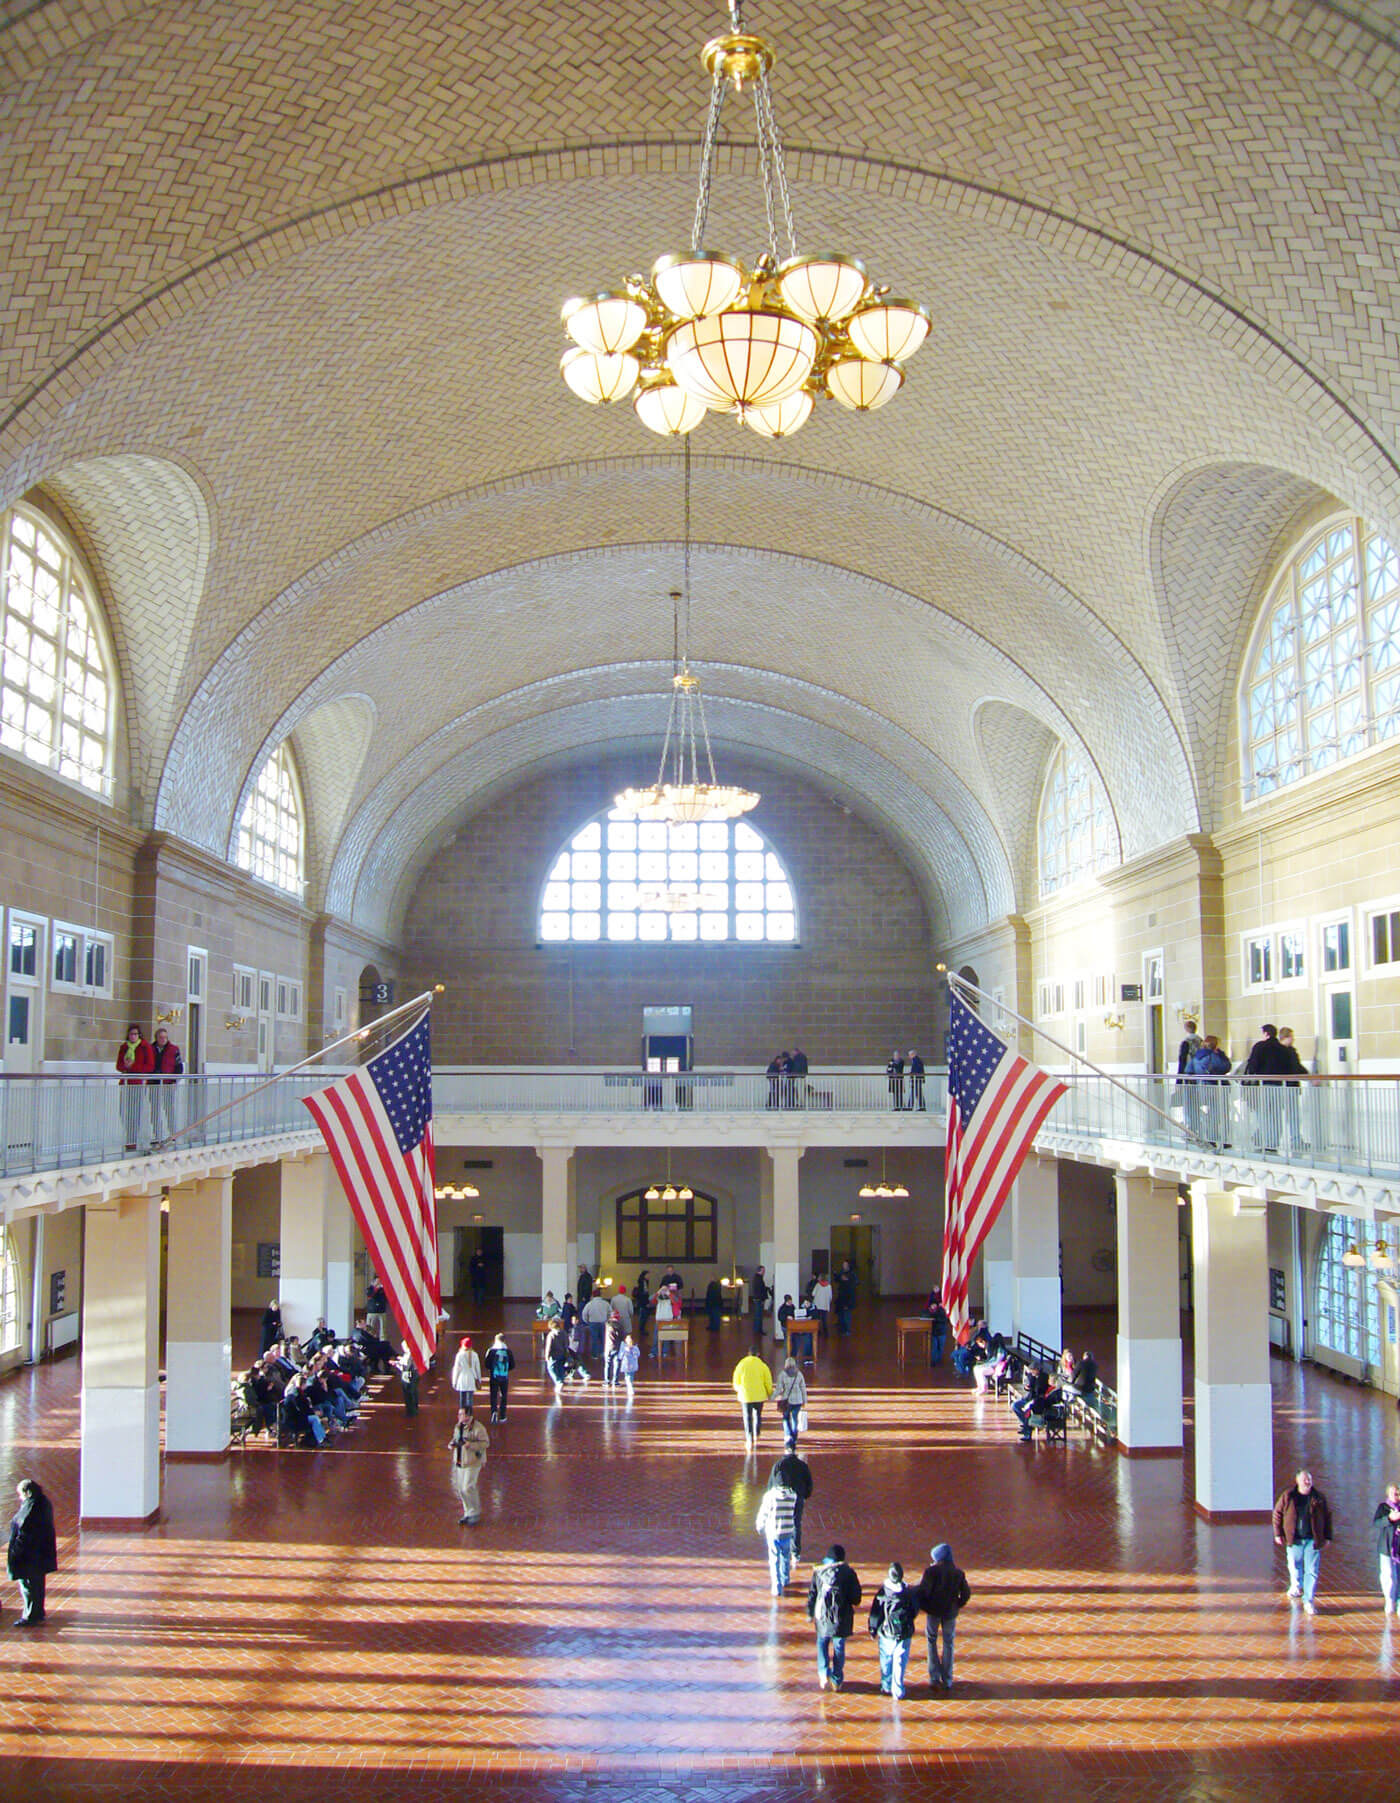 Symmetrical image of Ellis Island's Great Hall with American flag hanging on each side and people talking.